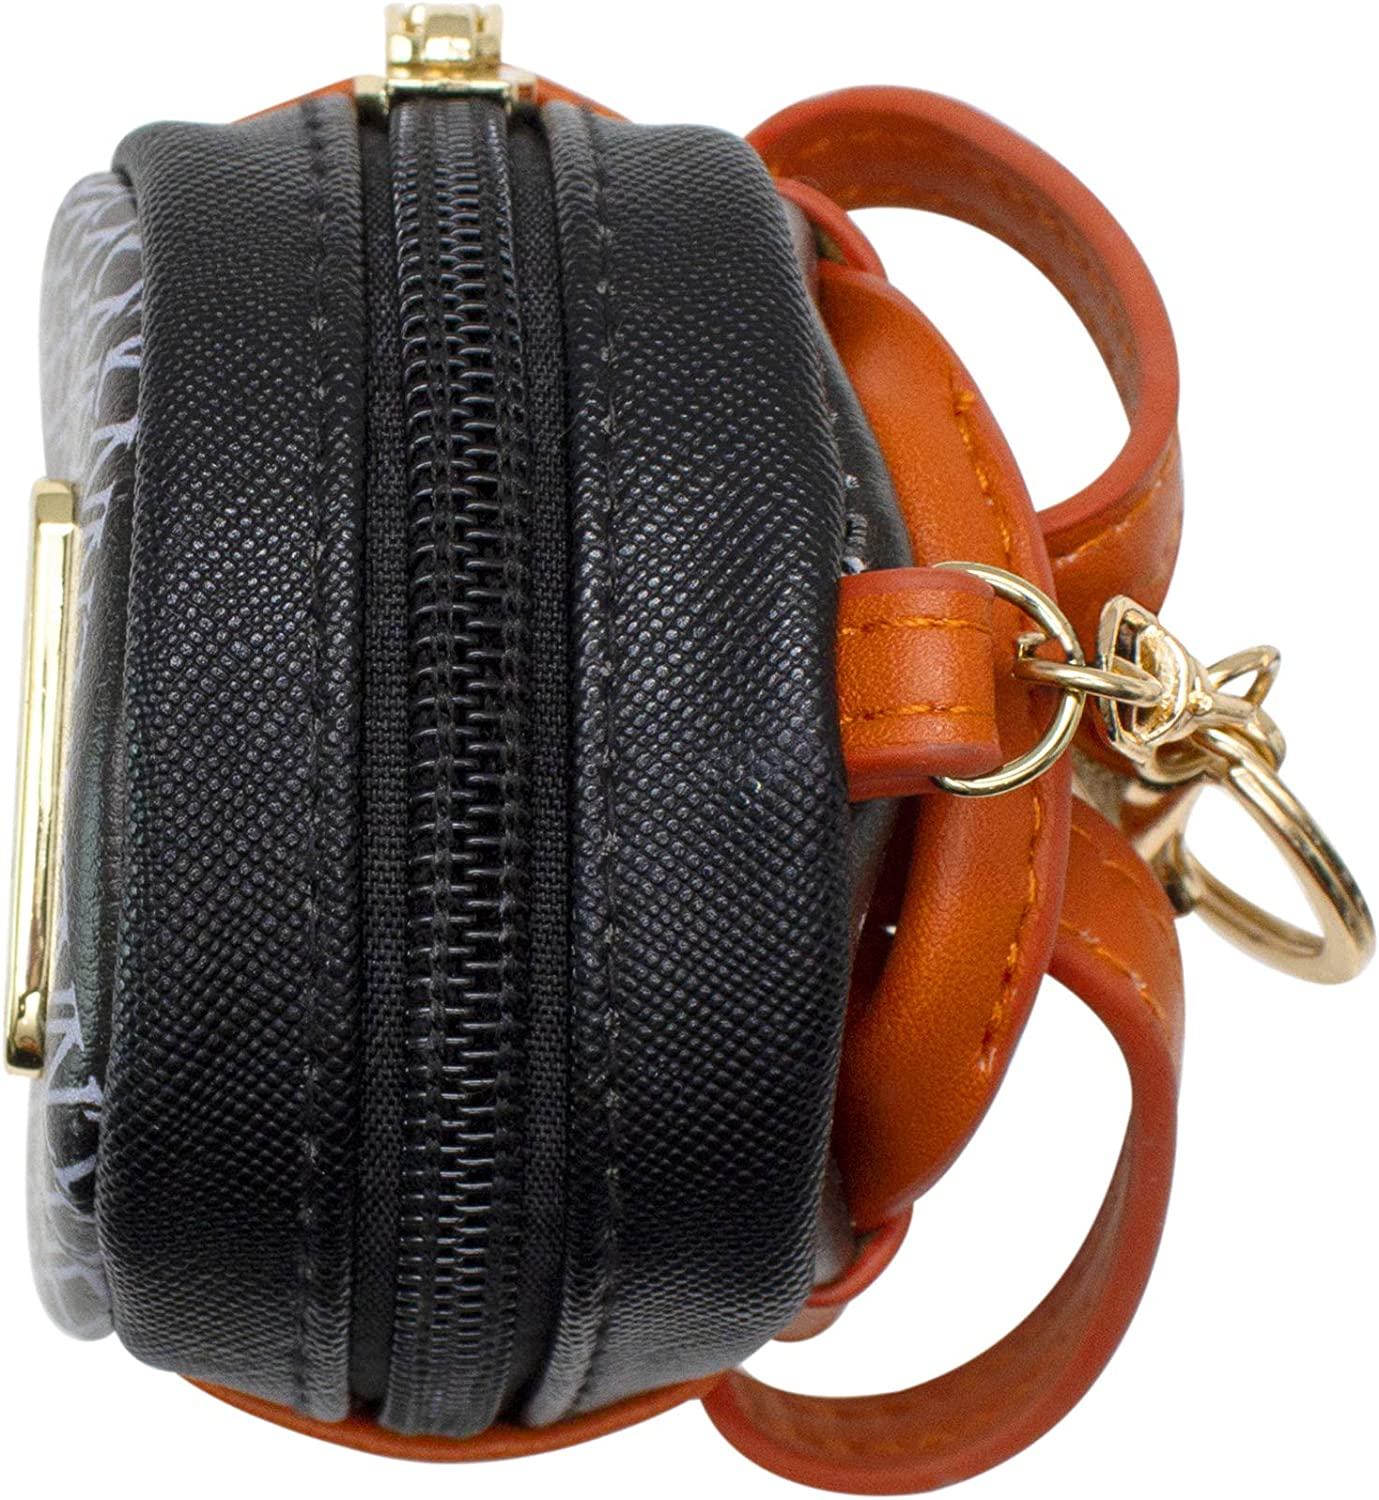 Mini Backpack Keychain with Key-ring and Lobster Claw Clasp